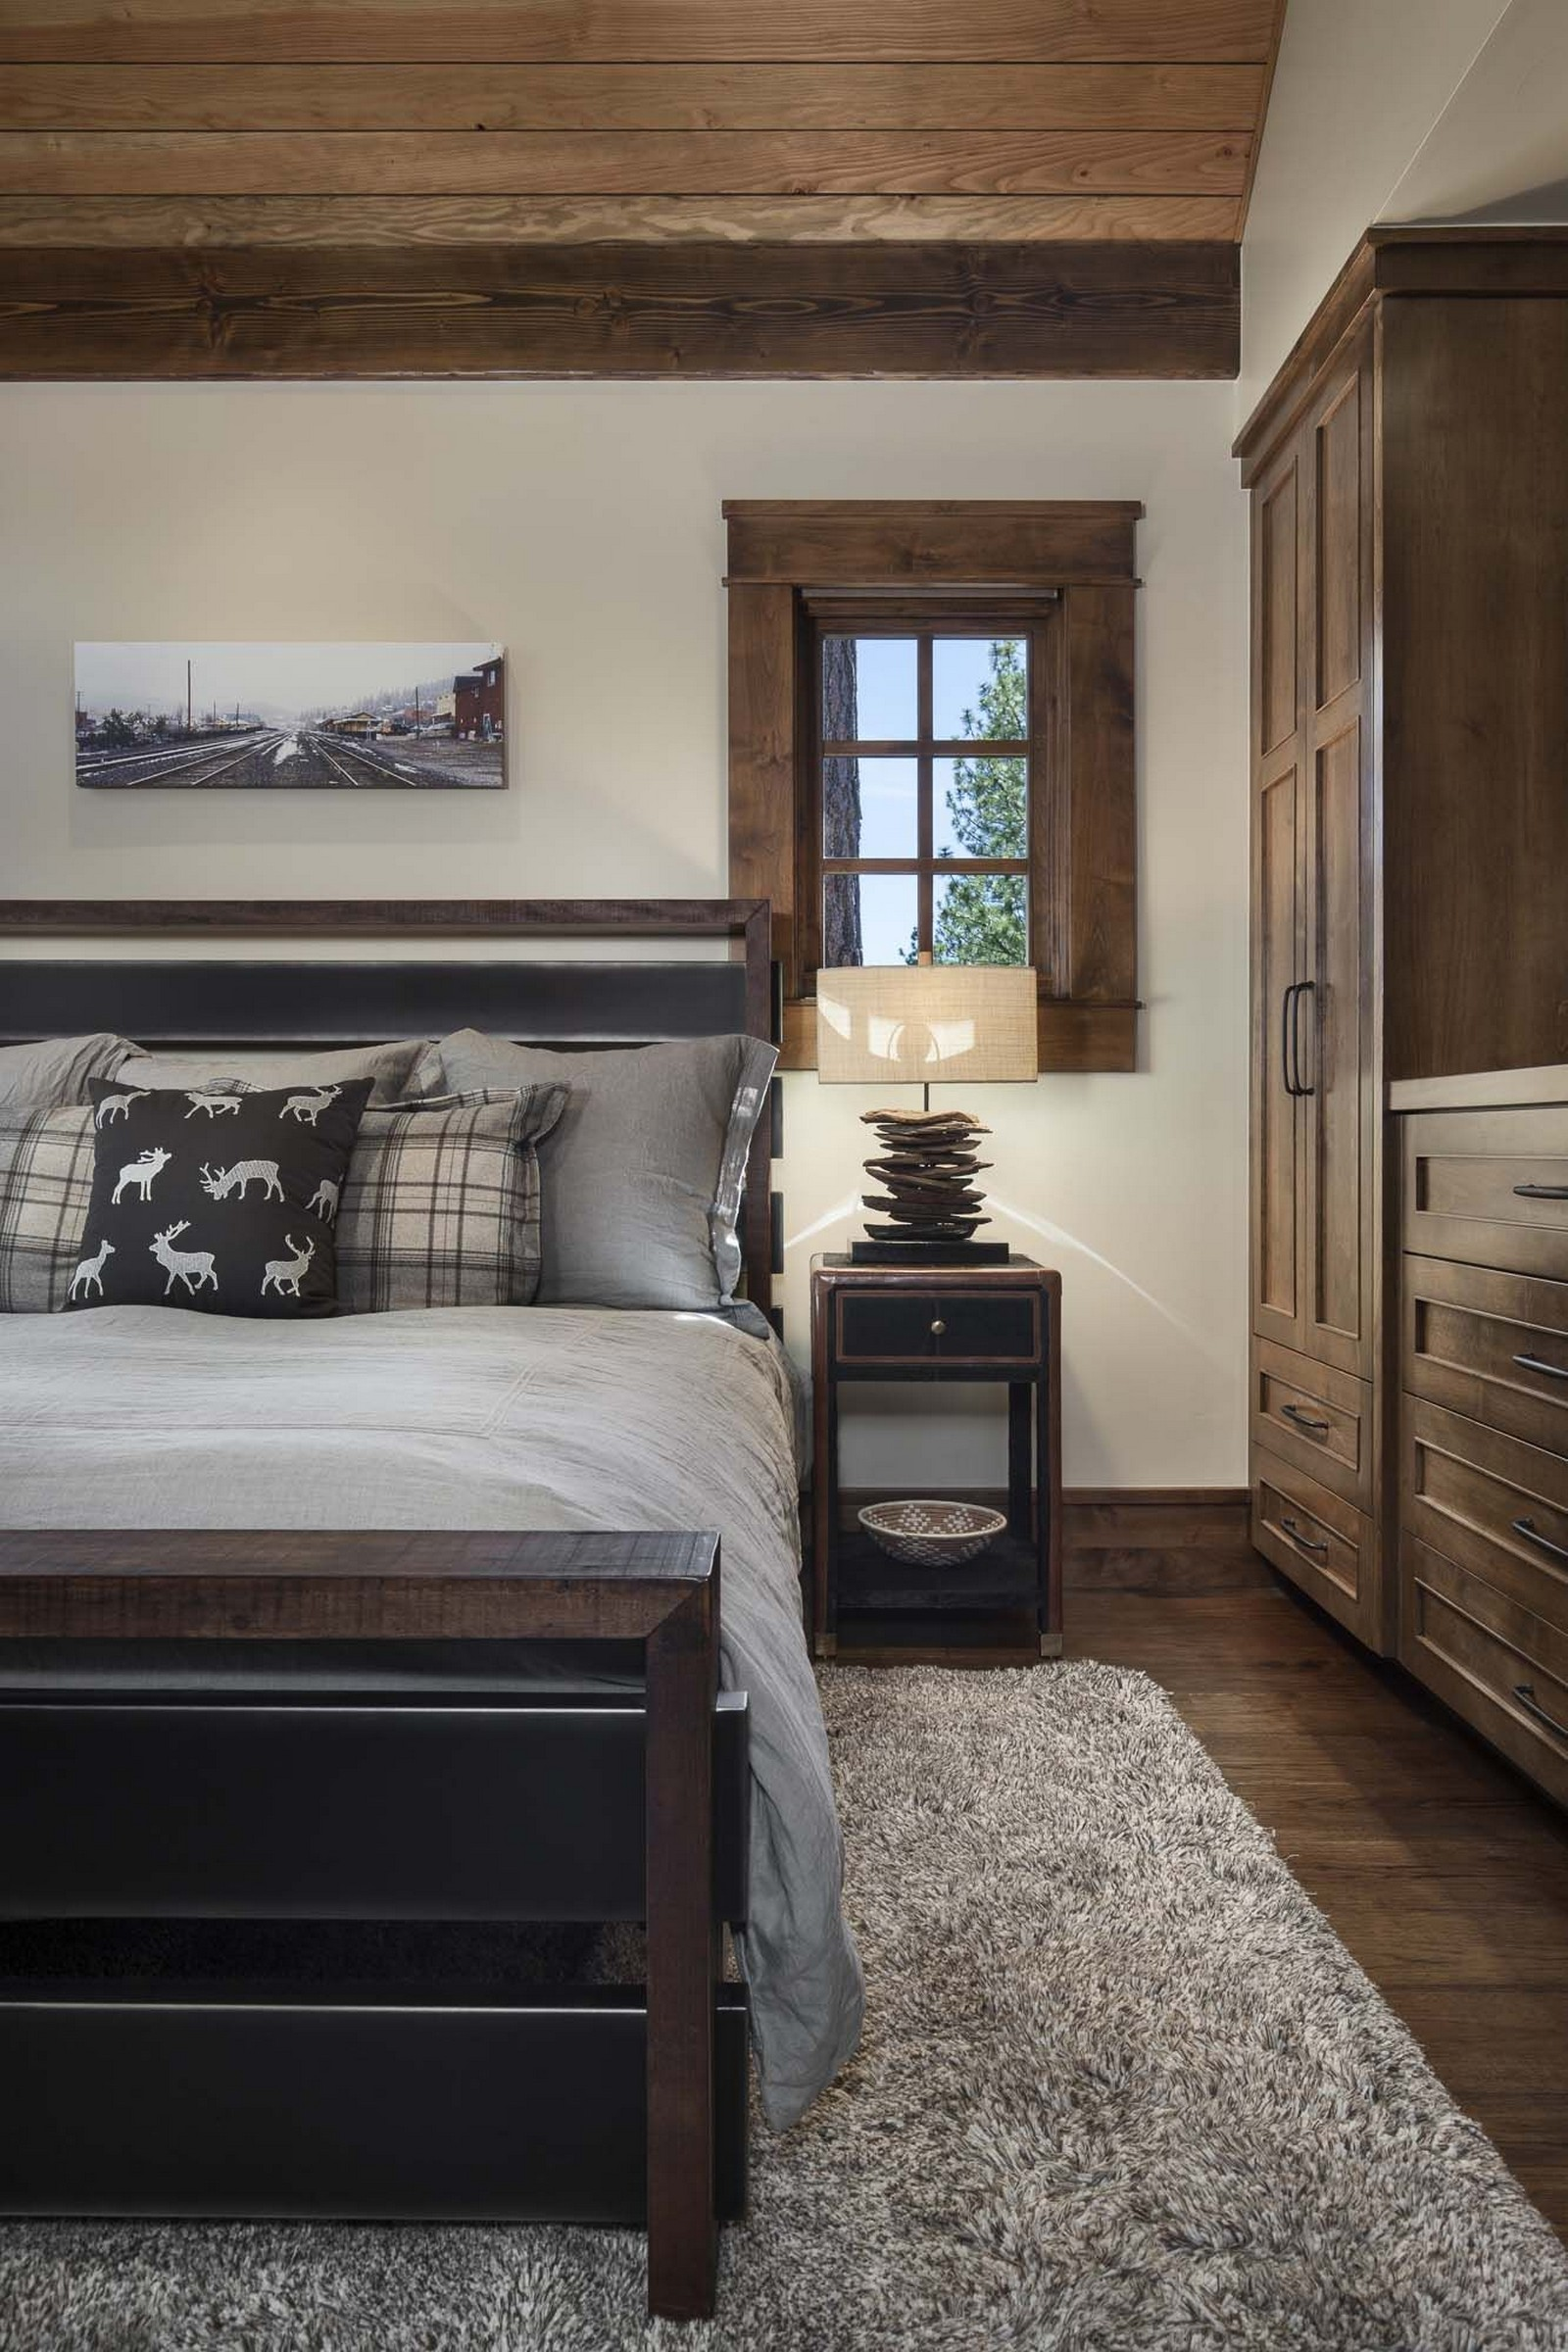 64 Rustic Bedroom Furniture How to Look Elegance Home Decor 6